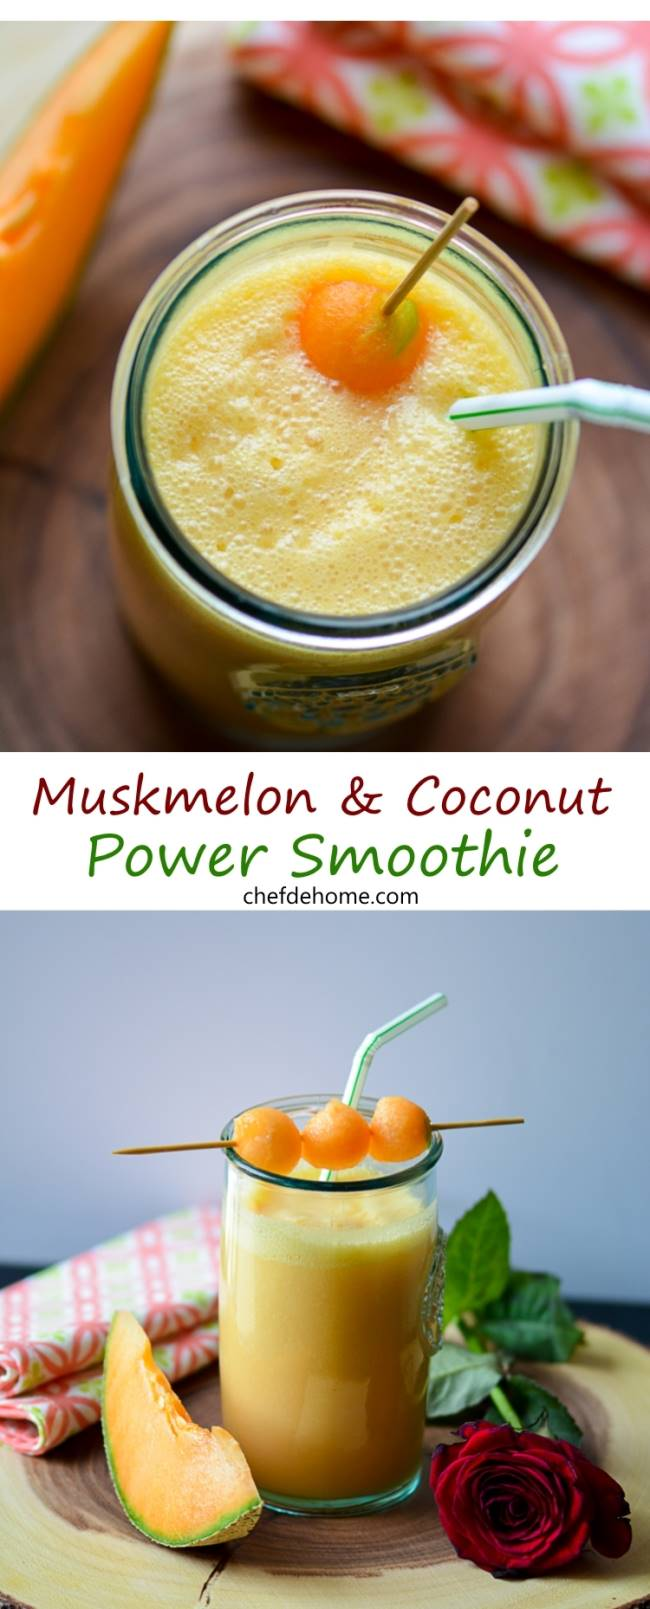 Gluten Free and Vegan Healthy Muskmelon and Coconut Smoothie | chefdehome.com